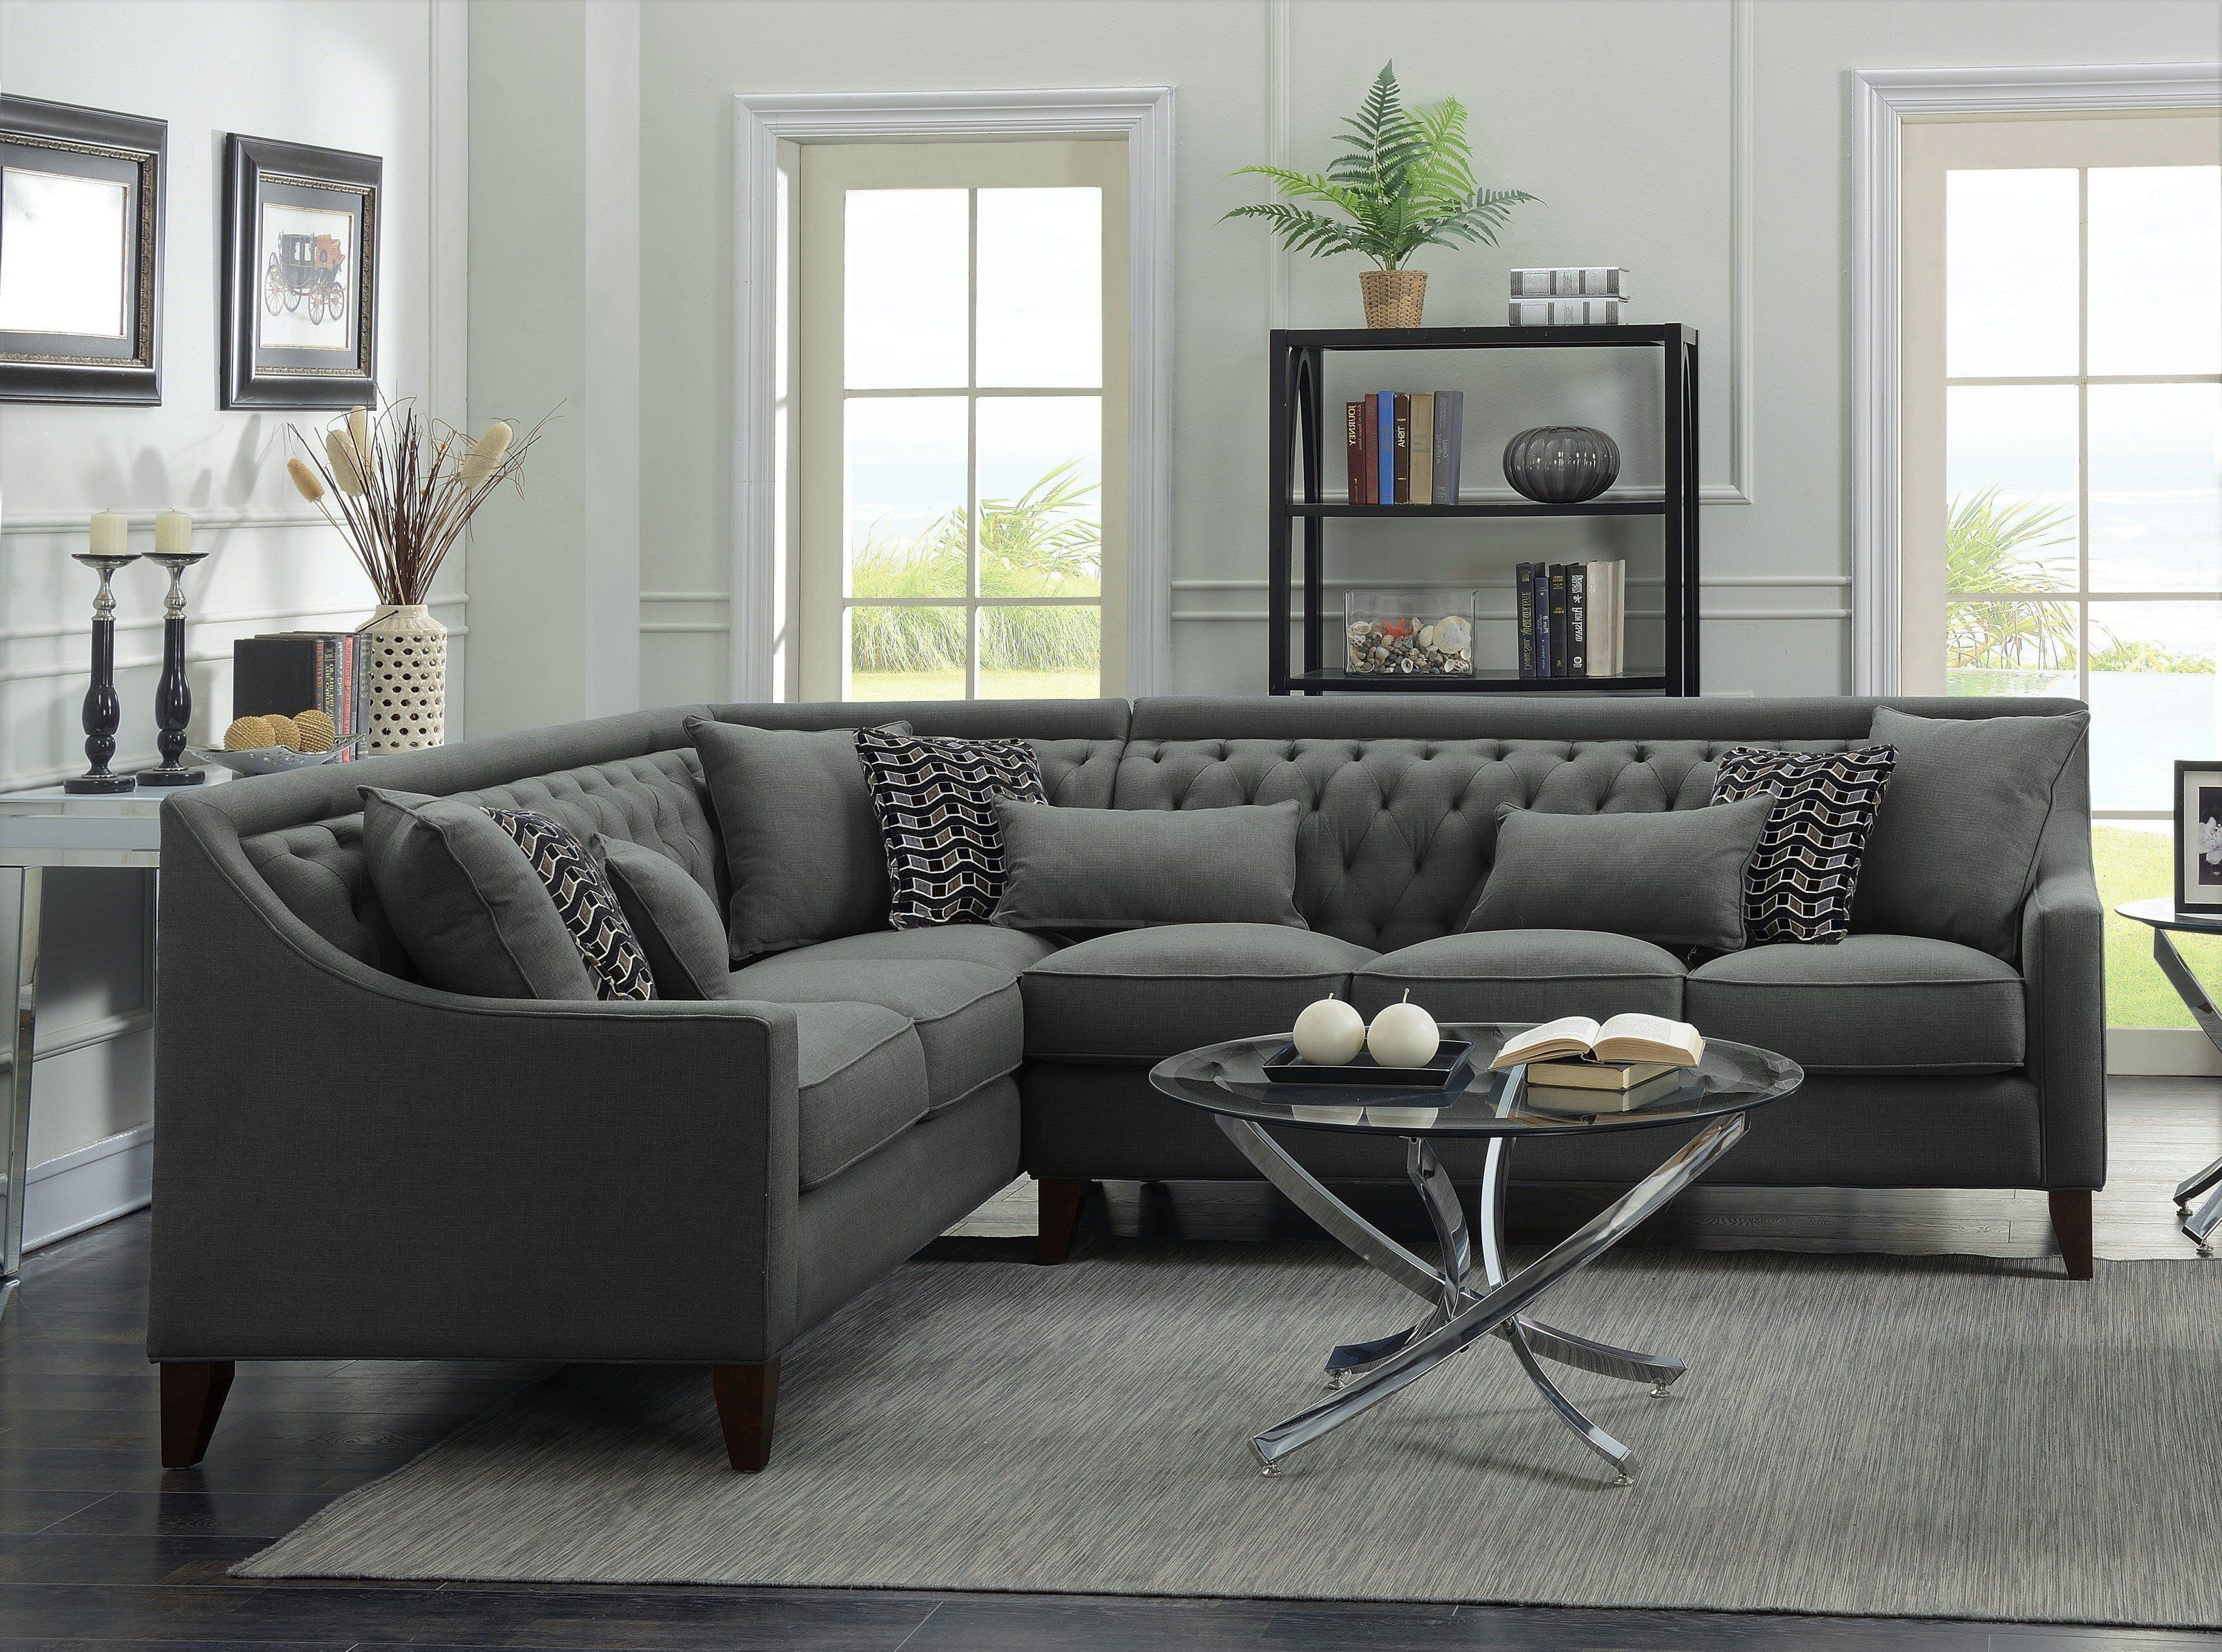 Iconic Home Aberdeen Linen Tufted Left Facing Sectional Sofa Grey